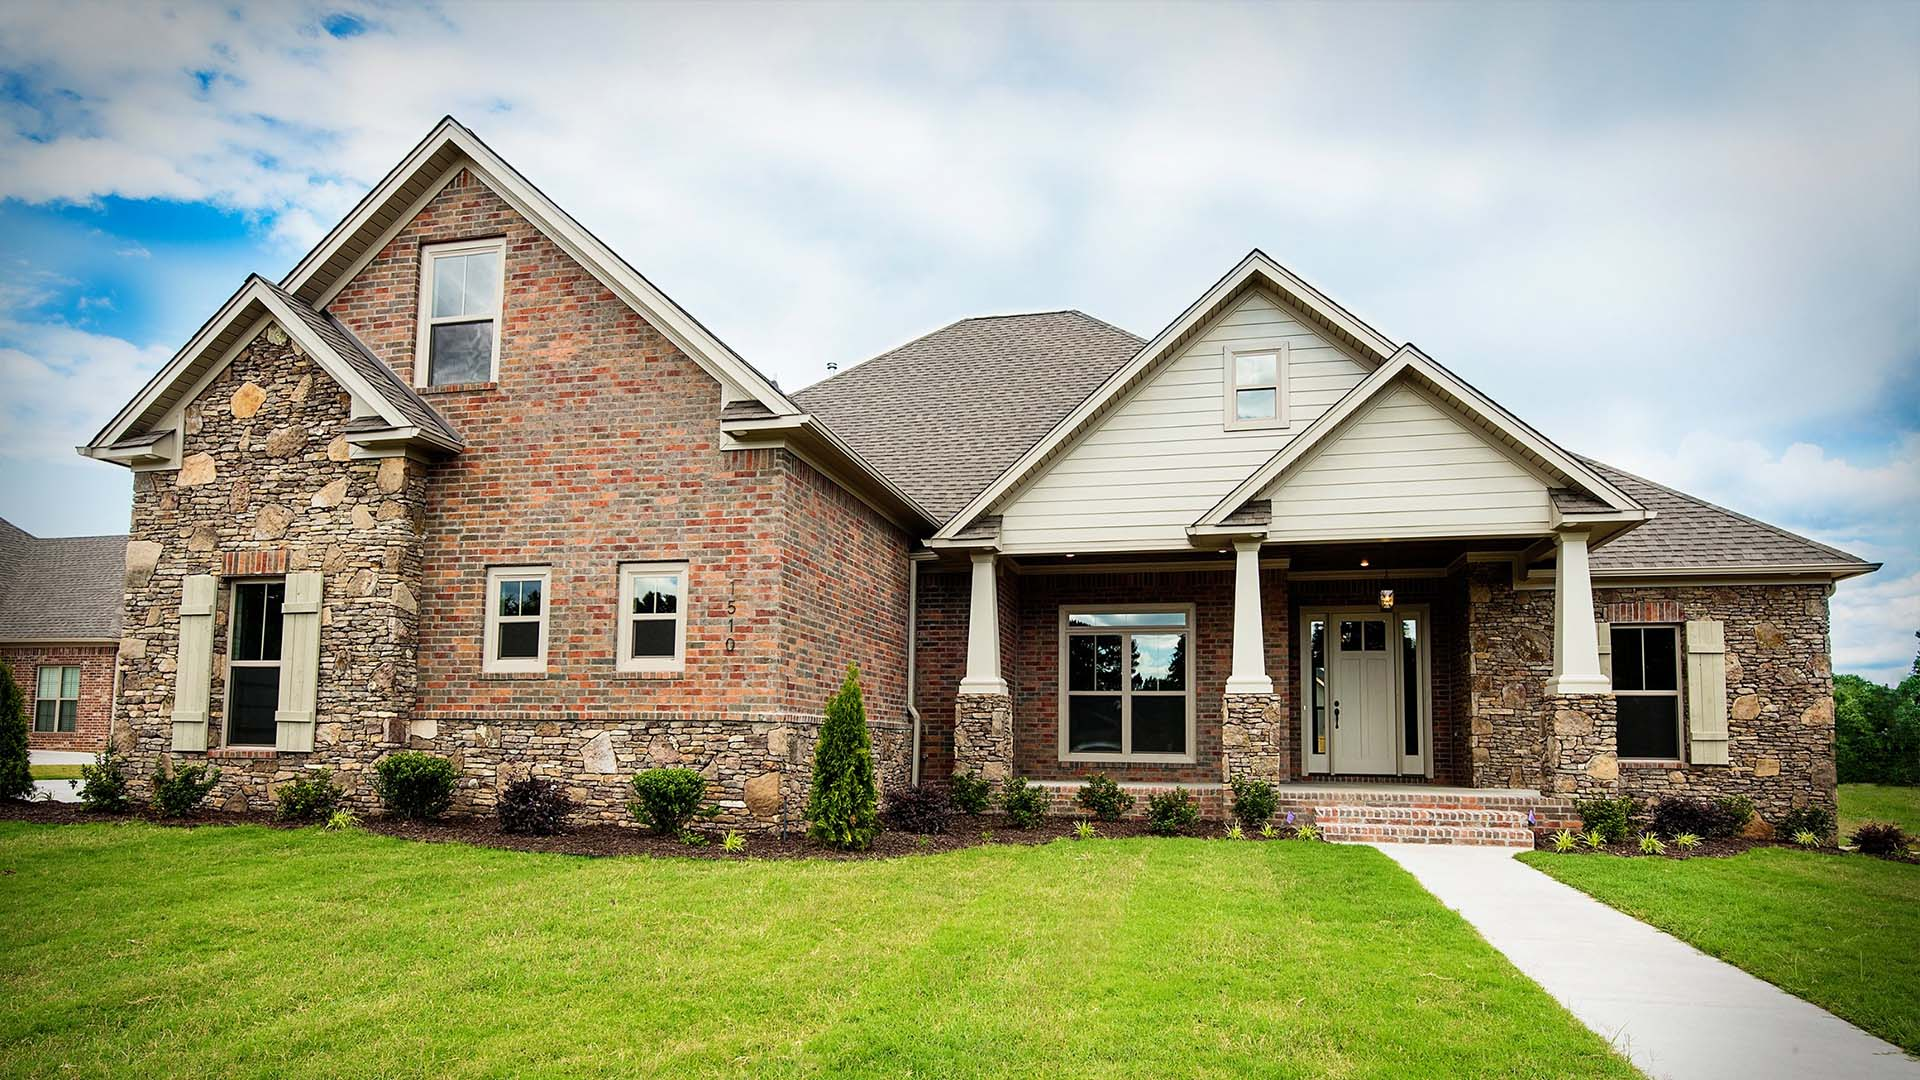 A Tom Watson Construction custom home with brick features